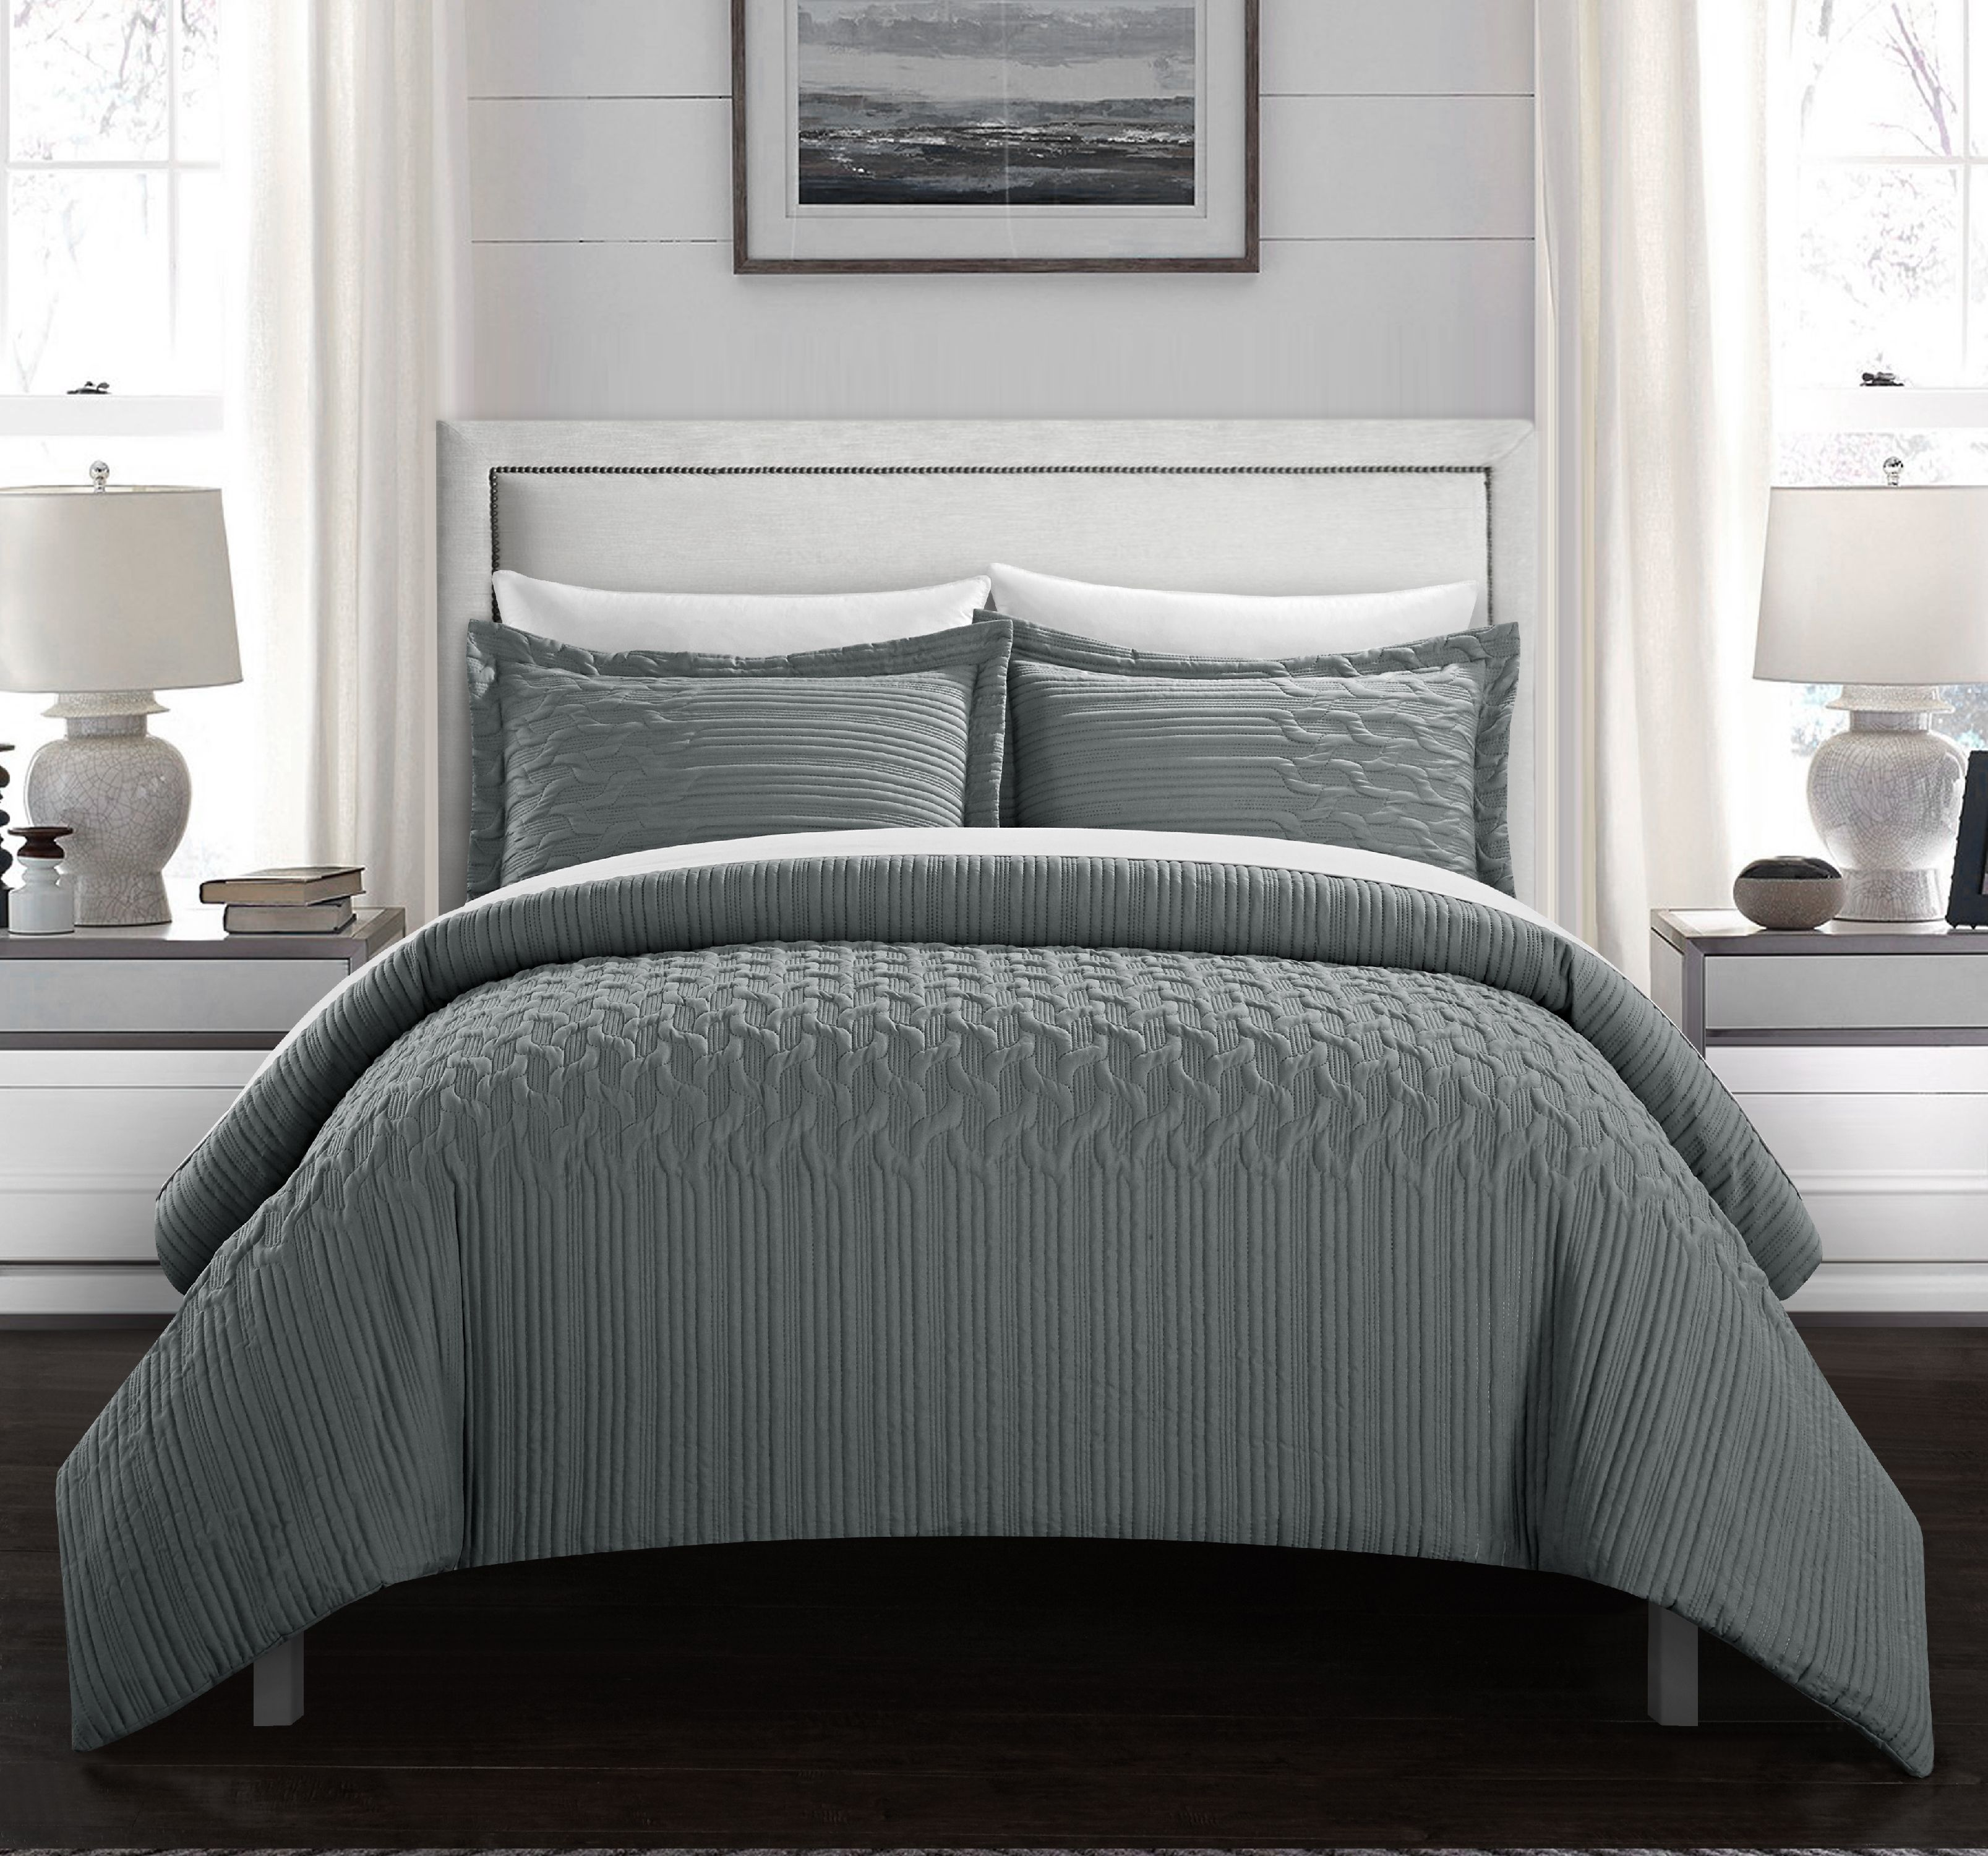 Chic Home Jas 2 Piece Comforter Set Embossed Vine Pattern Bedding